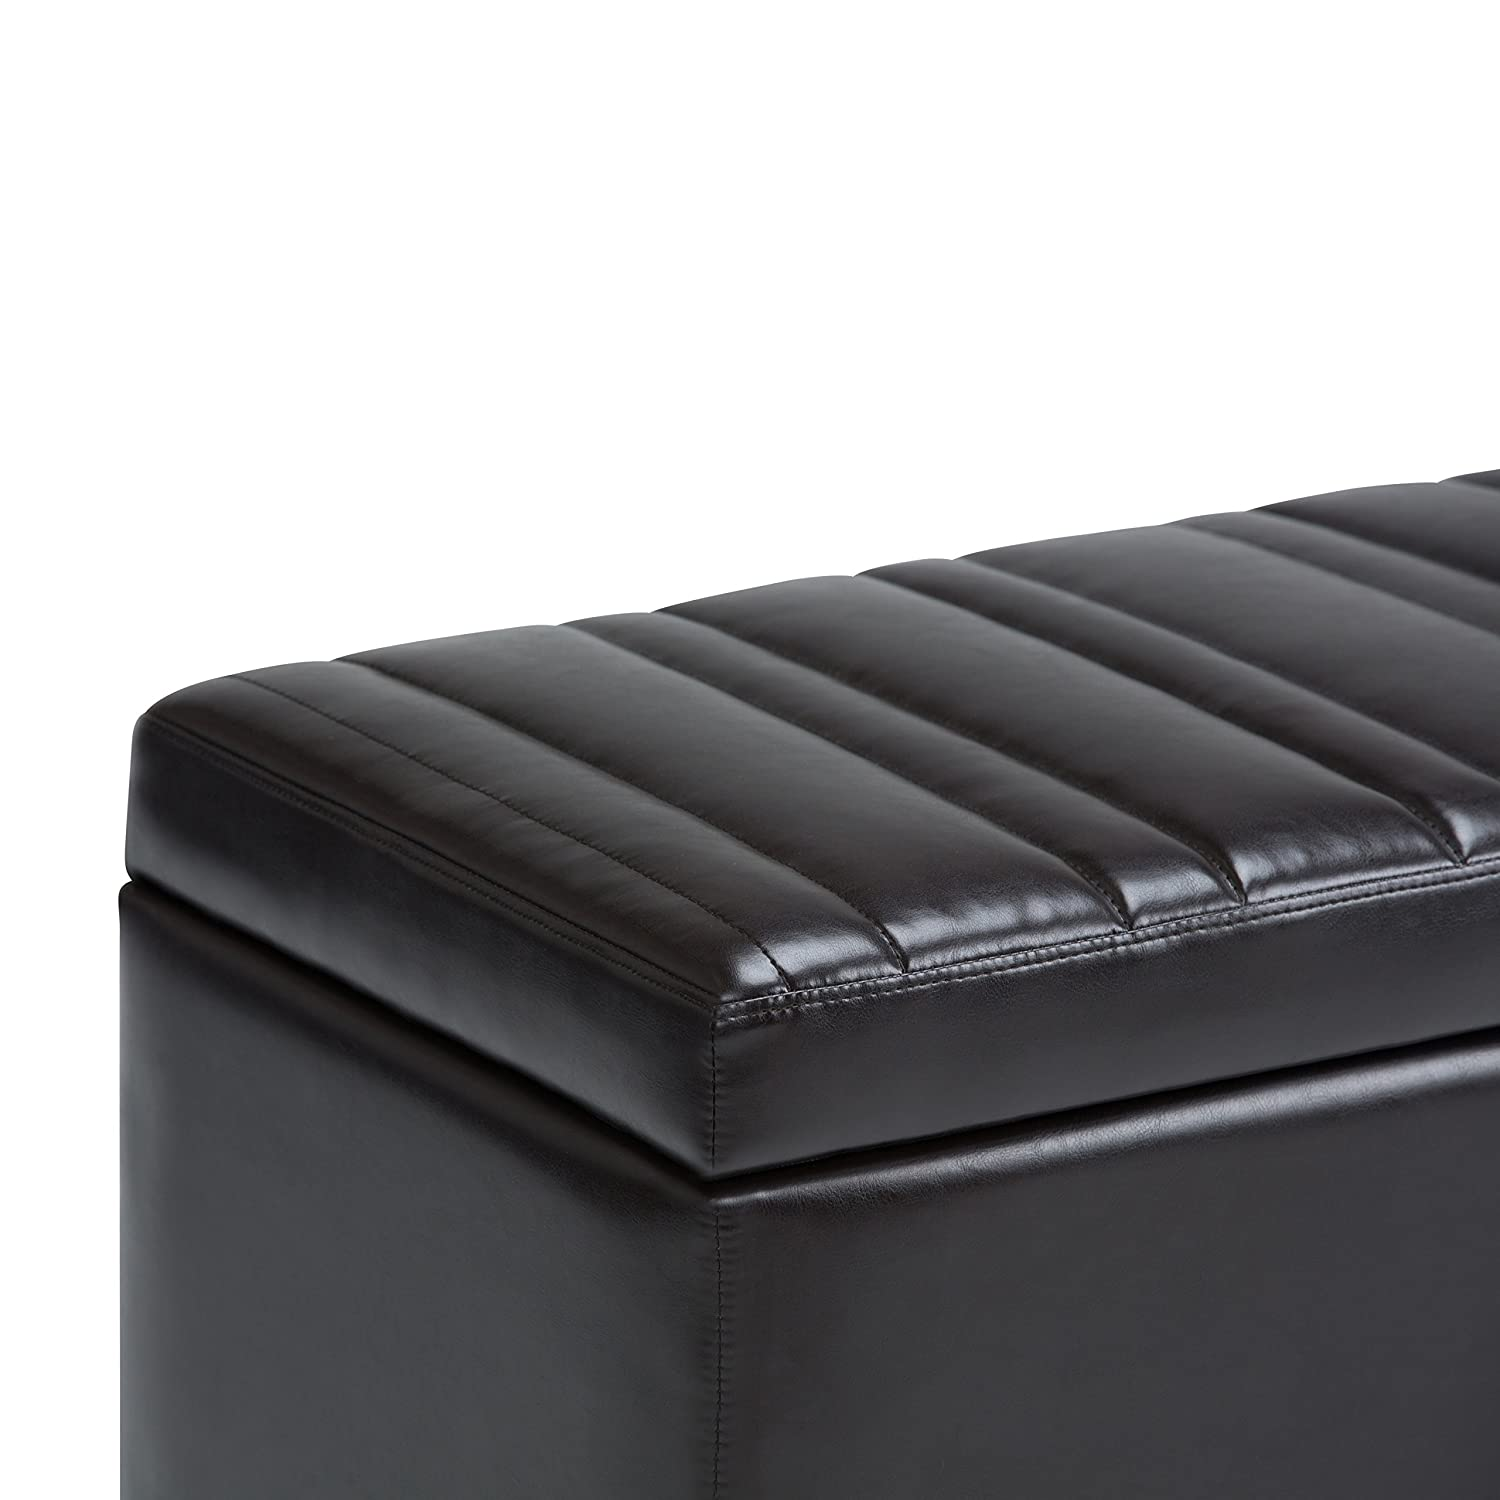 Simpli Home AXCOT-259-BR Darcy Storage Ottoman Bench in Tanners Brown Faux Leather